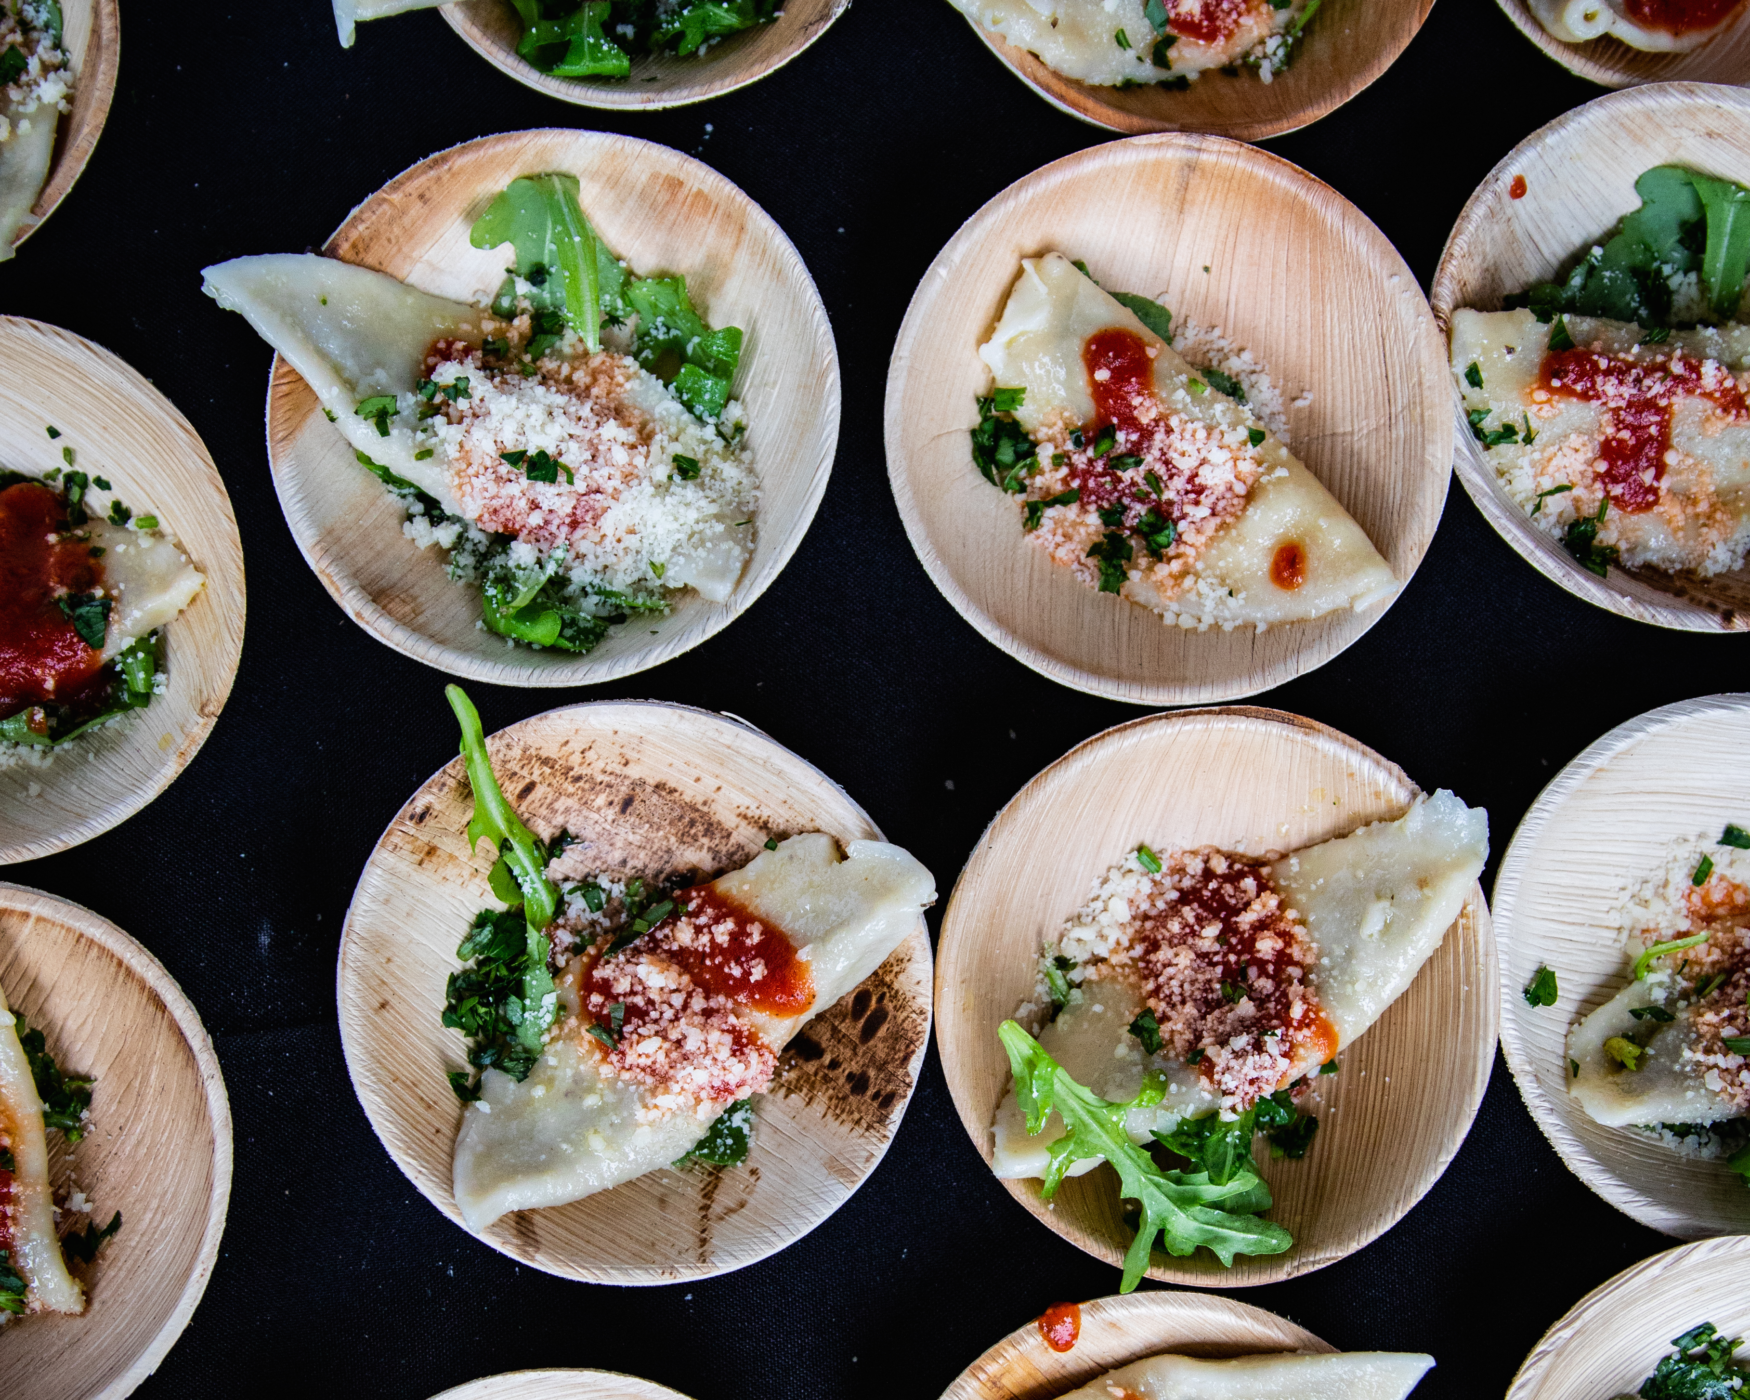 A reimagined Chicago Gourmet dishes up all new events this year